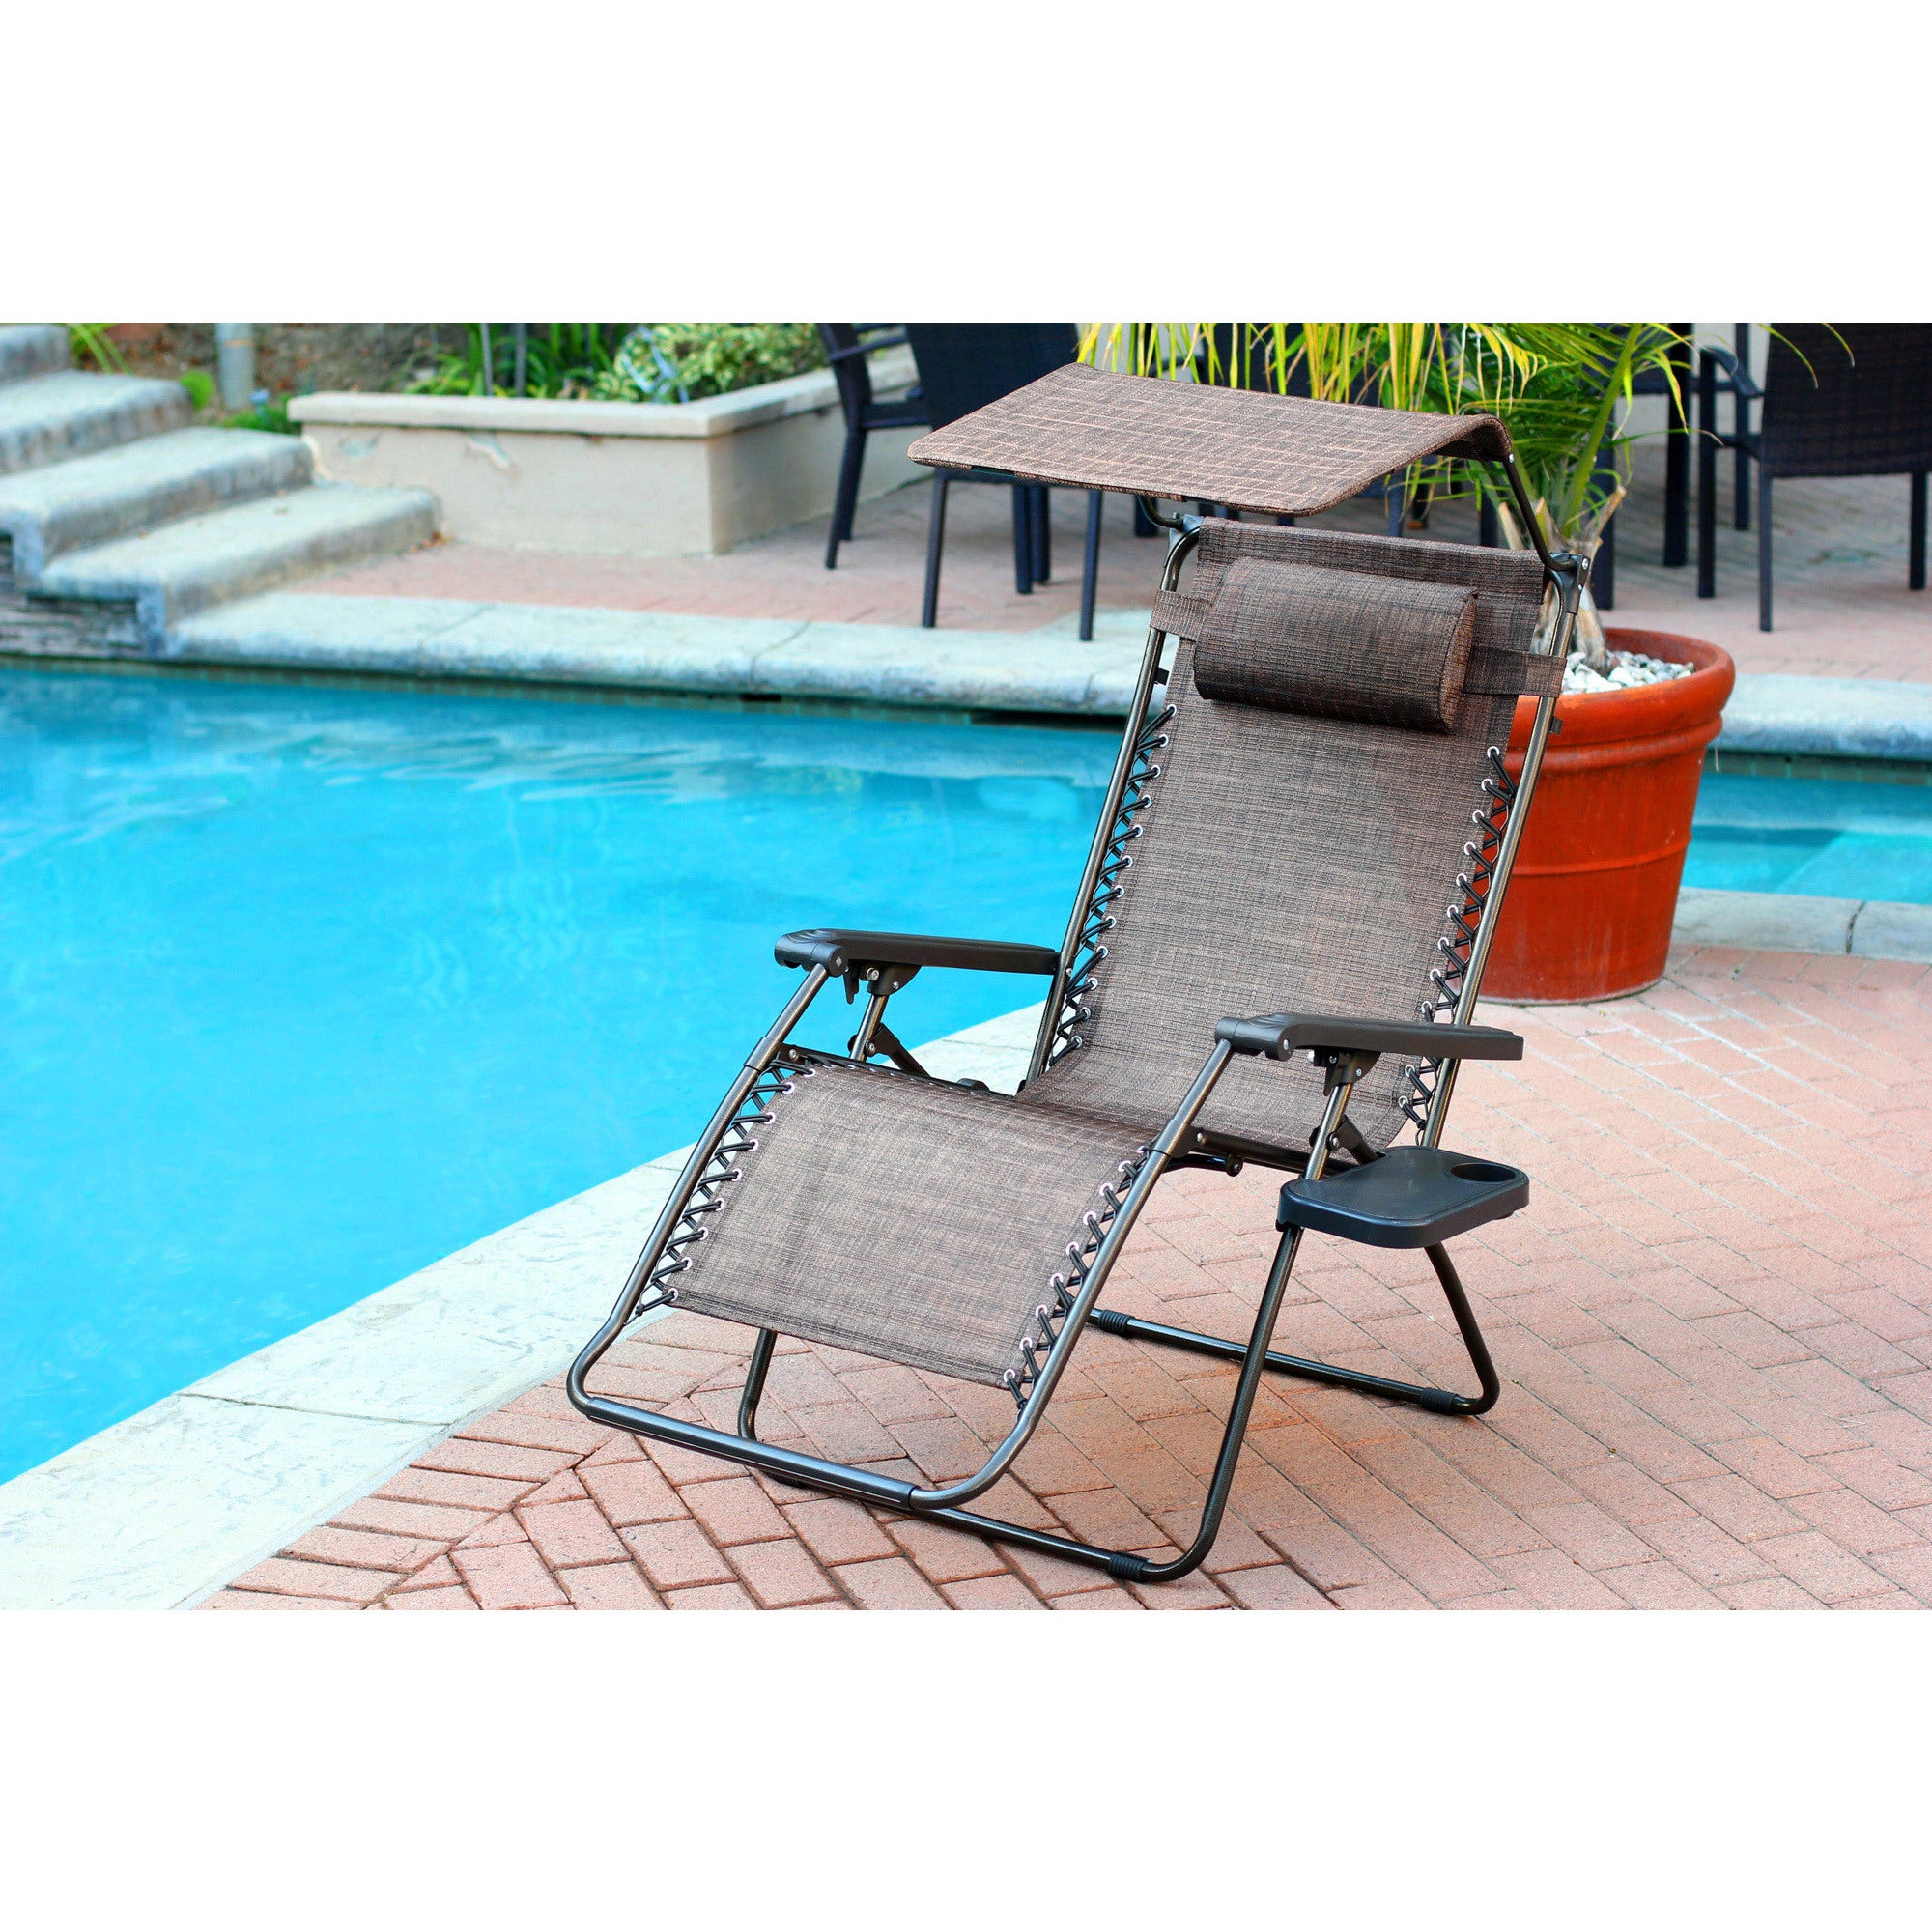 with chair zero garden free home oversized tray shipping overstock lounge and product chaise today gravity brown finish sunshade drink